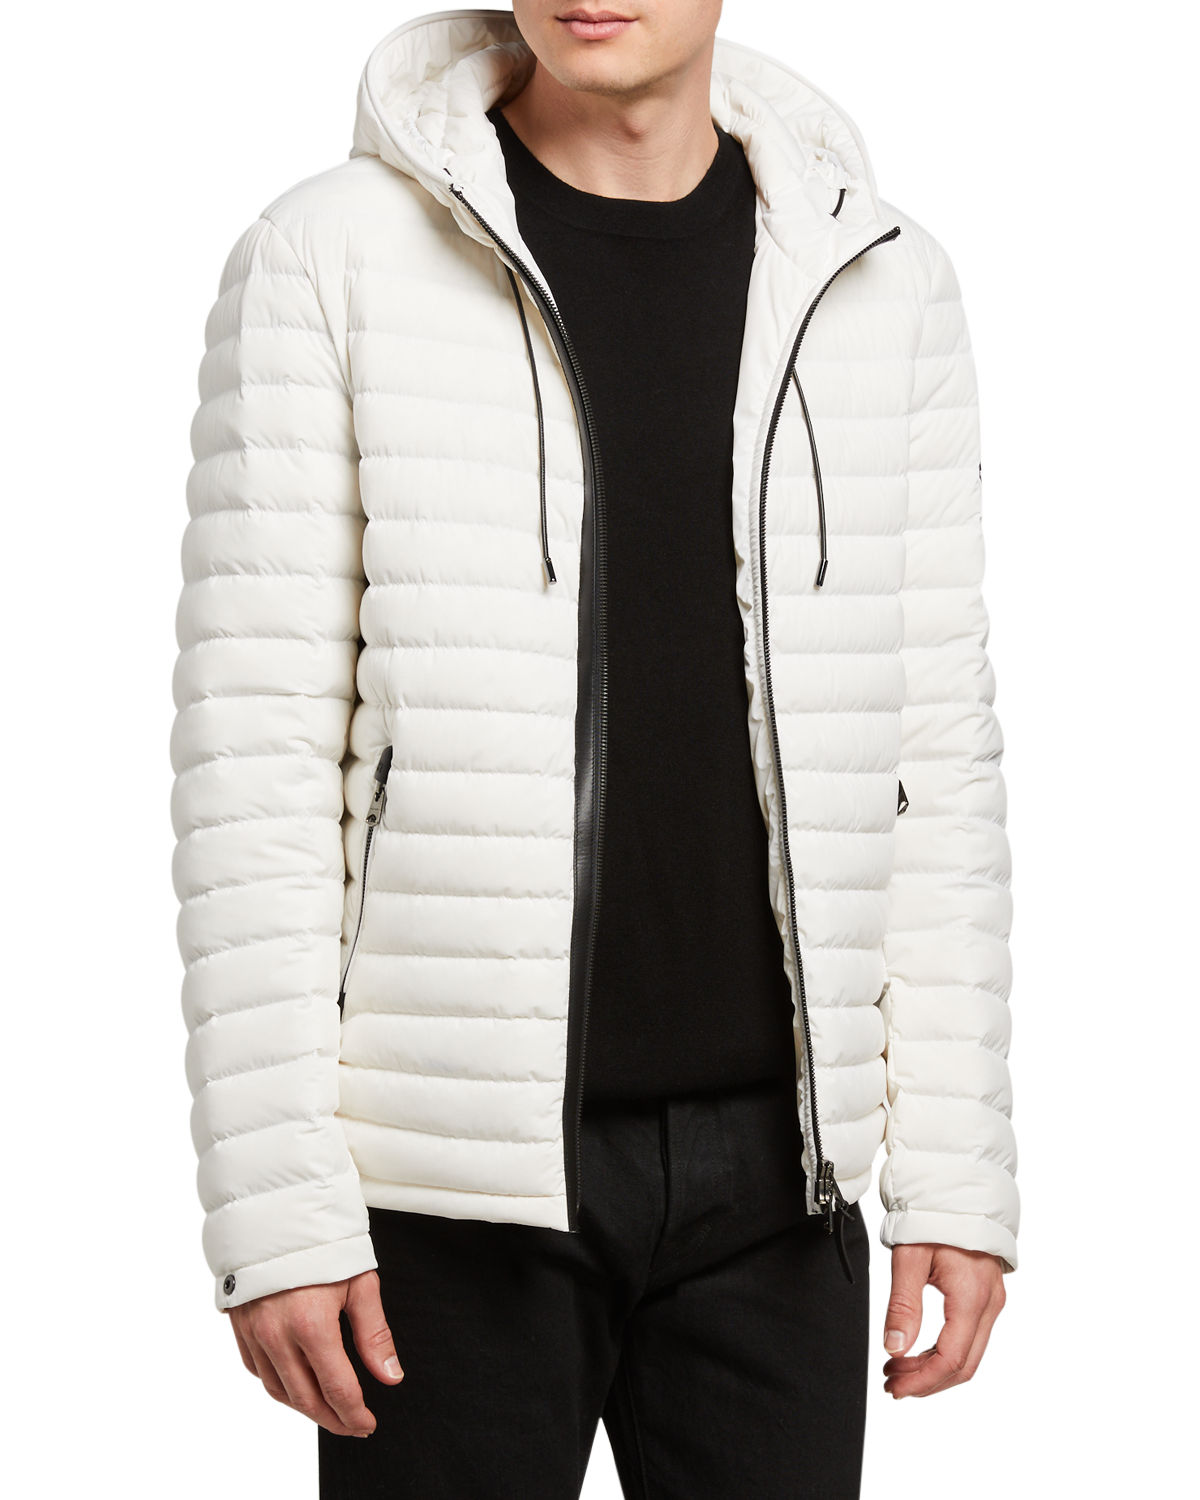 Mackage MEN'S MIKE STRETCH LIGHTWEIGHT DOWN JACKET